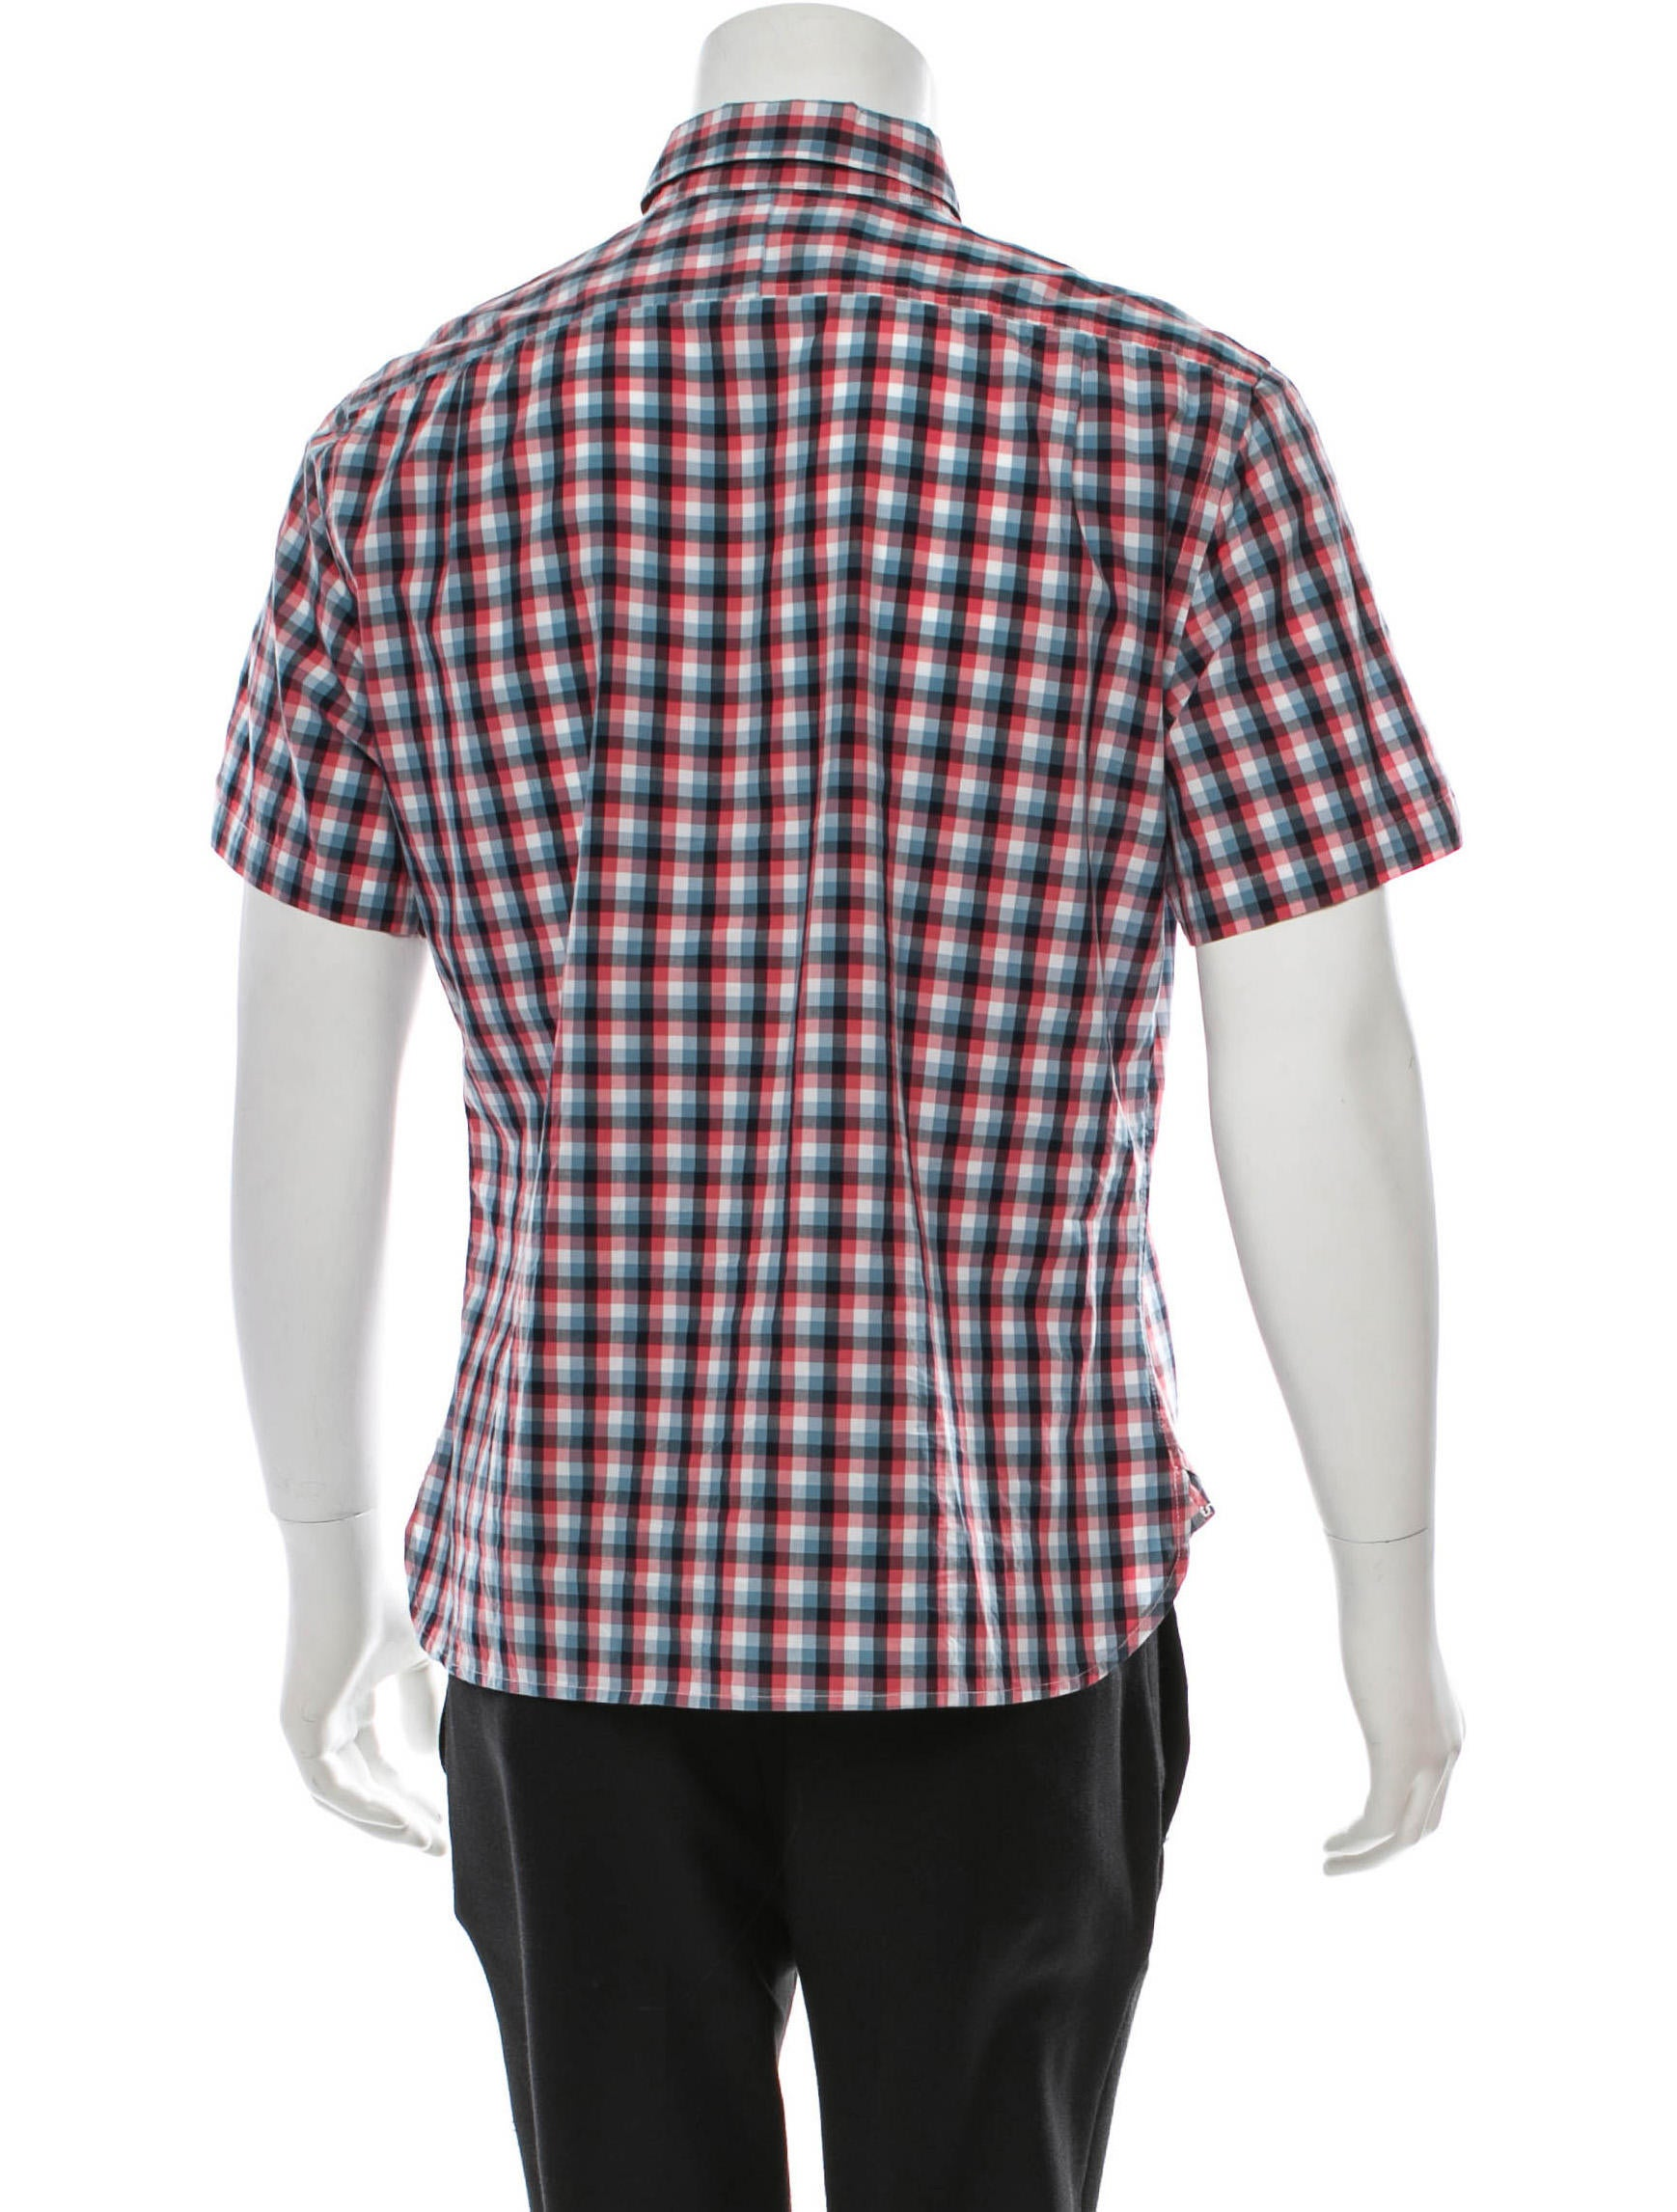 Shipley halmos plaid short sleeve shirt clothing Short sleeve plaid shirts